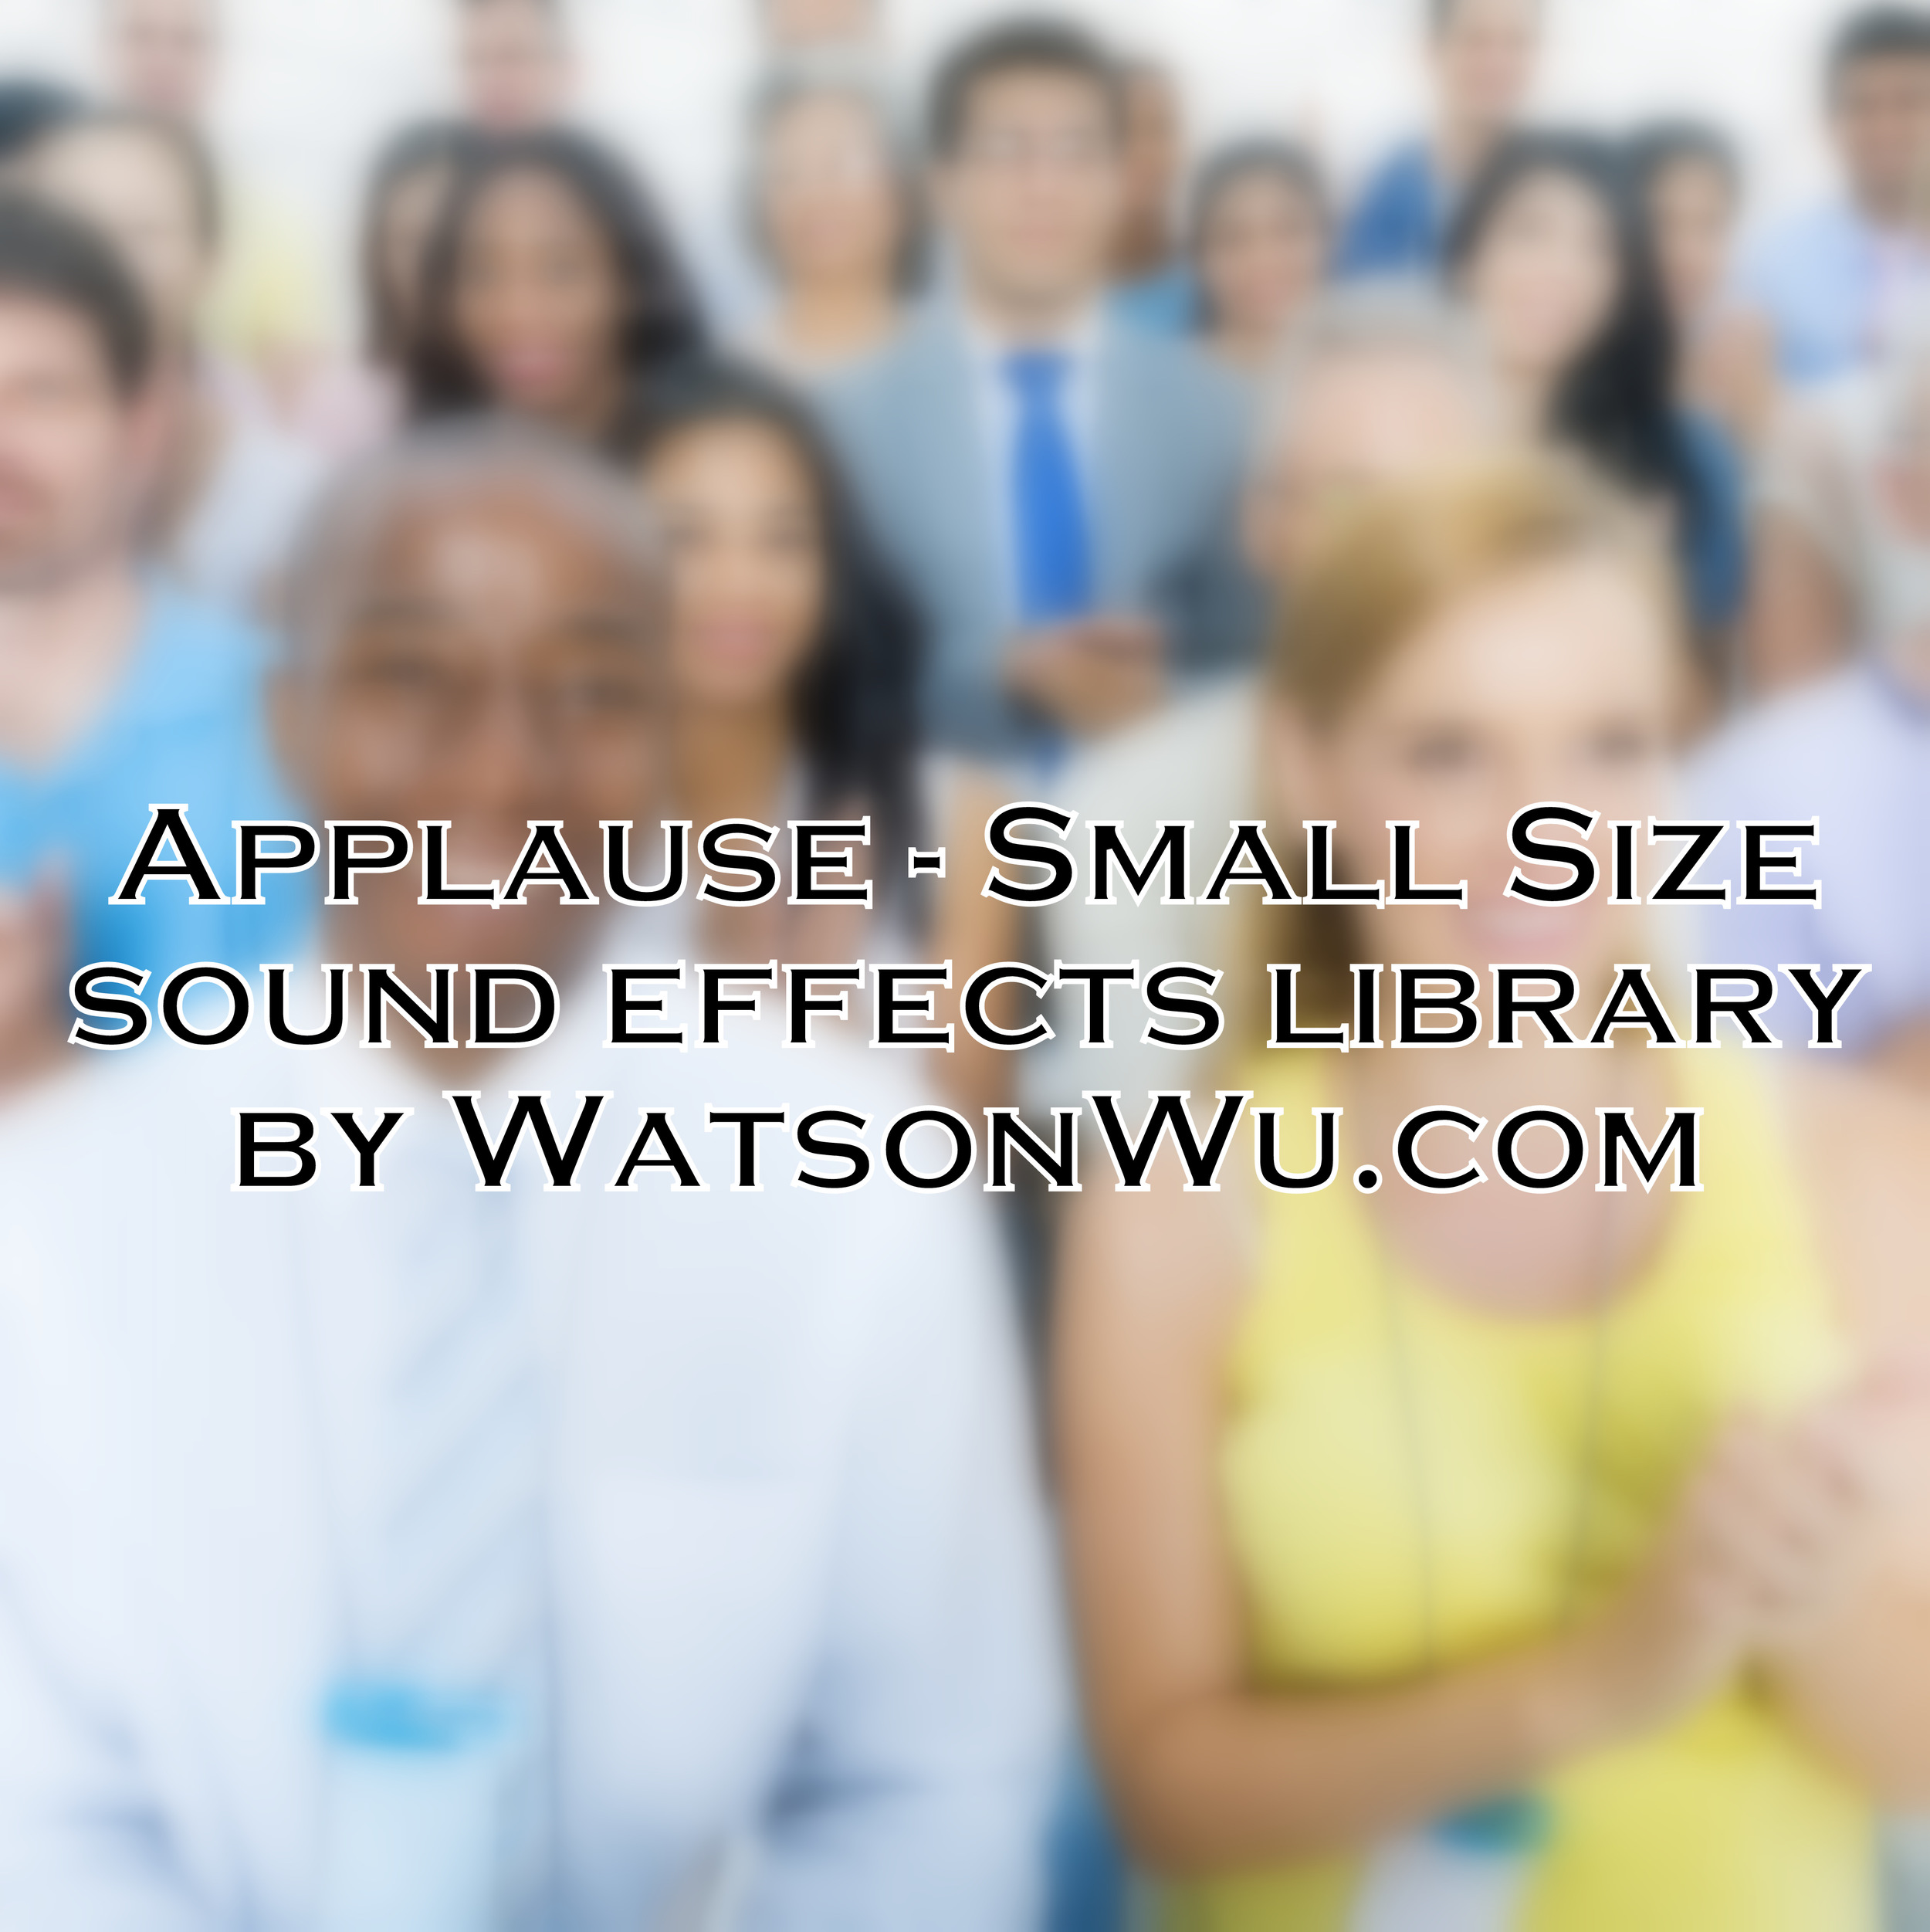 Applause - small size crowds sound effects library